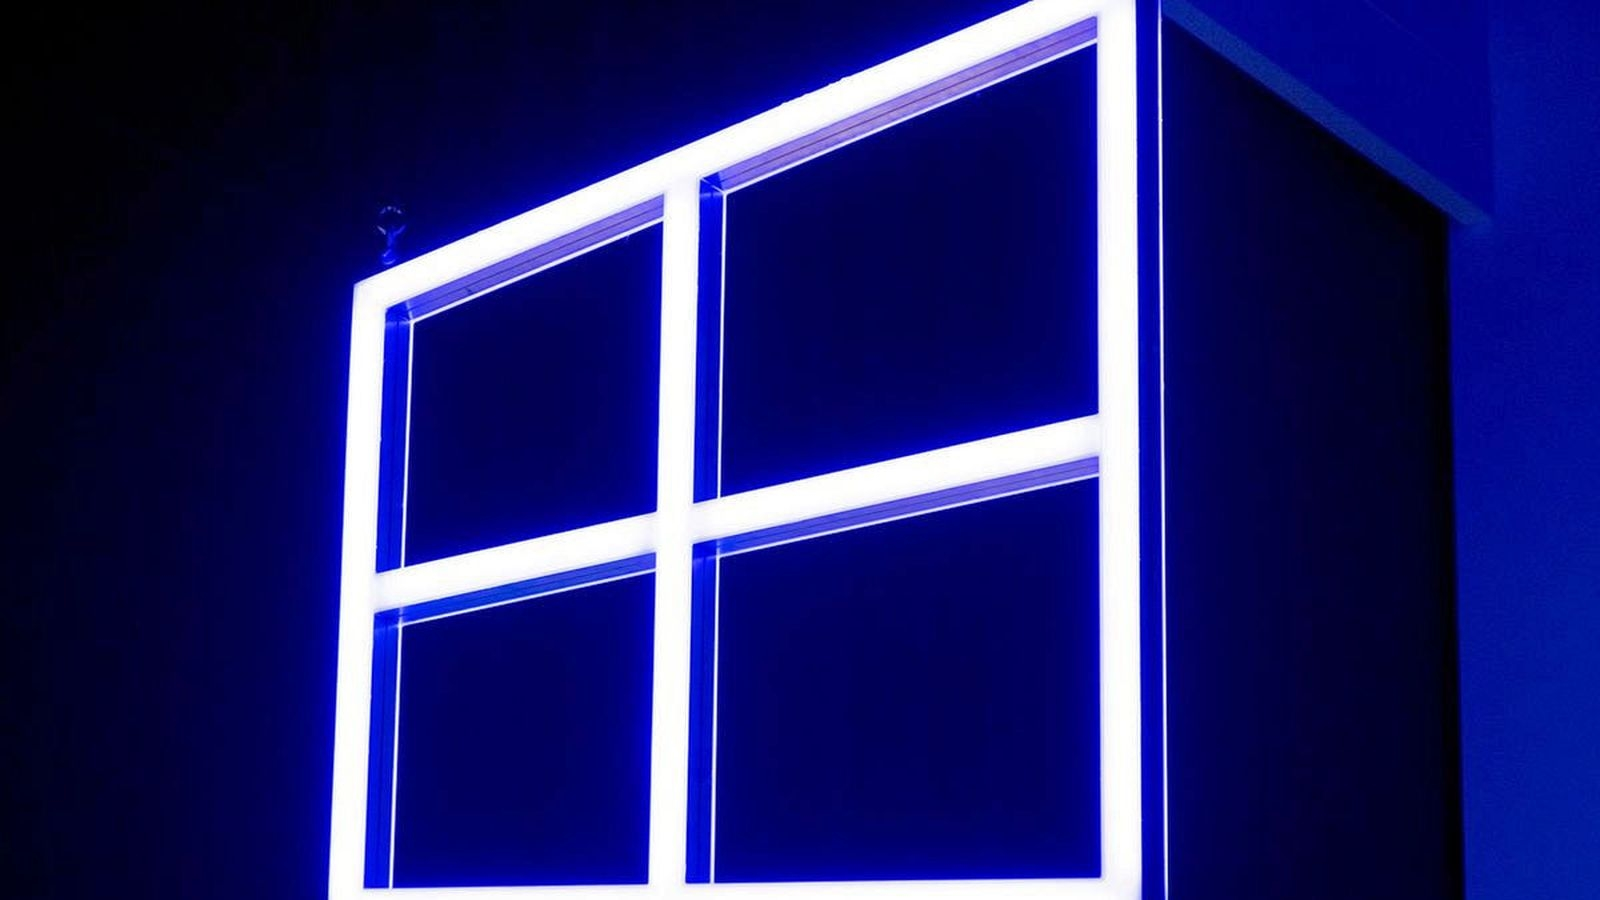 windows 10 logo azul